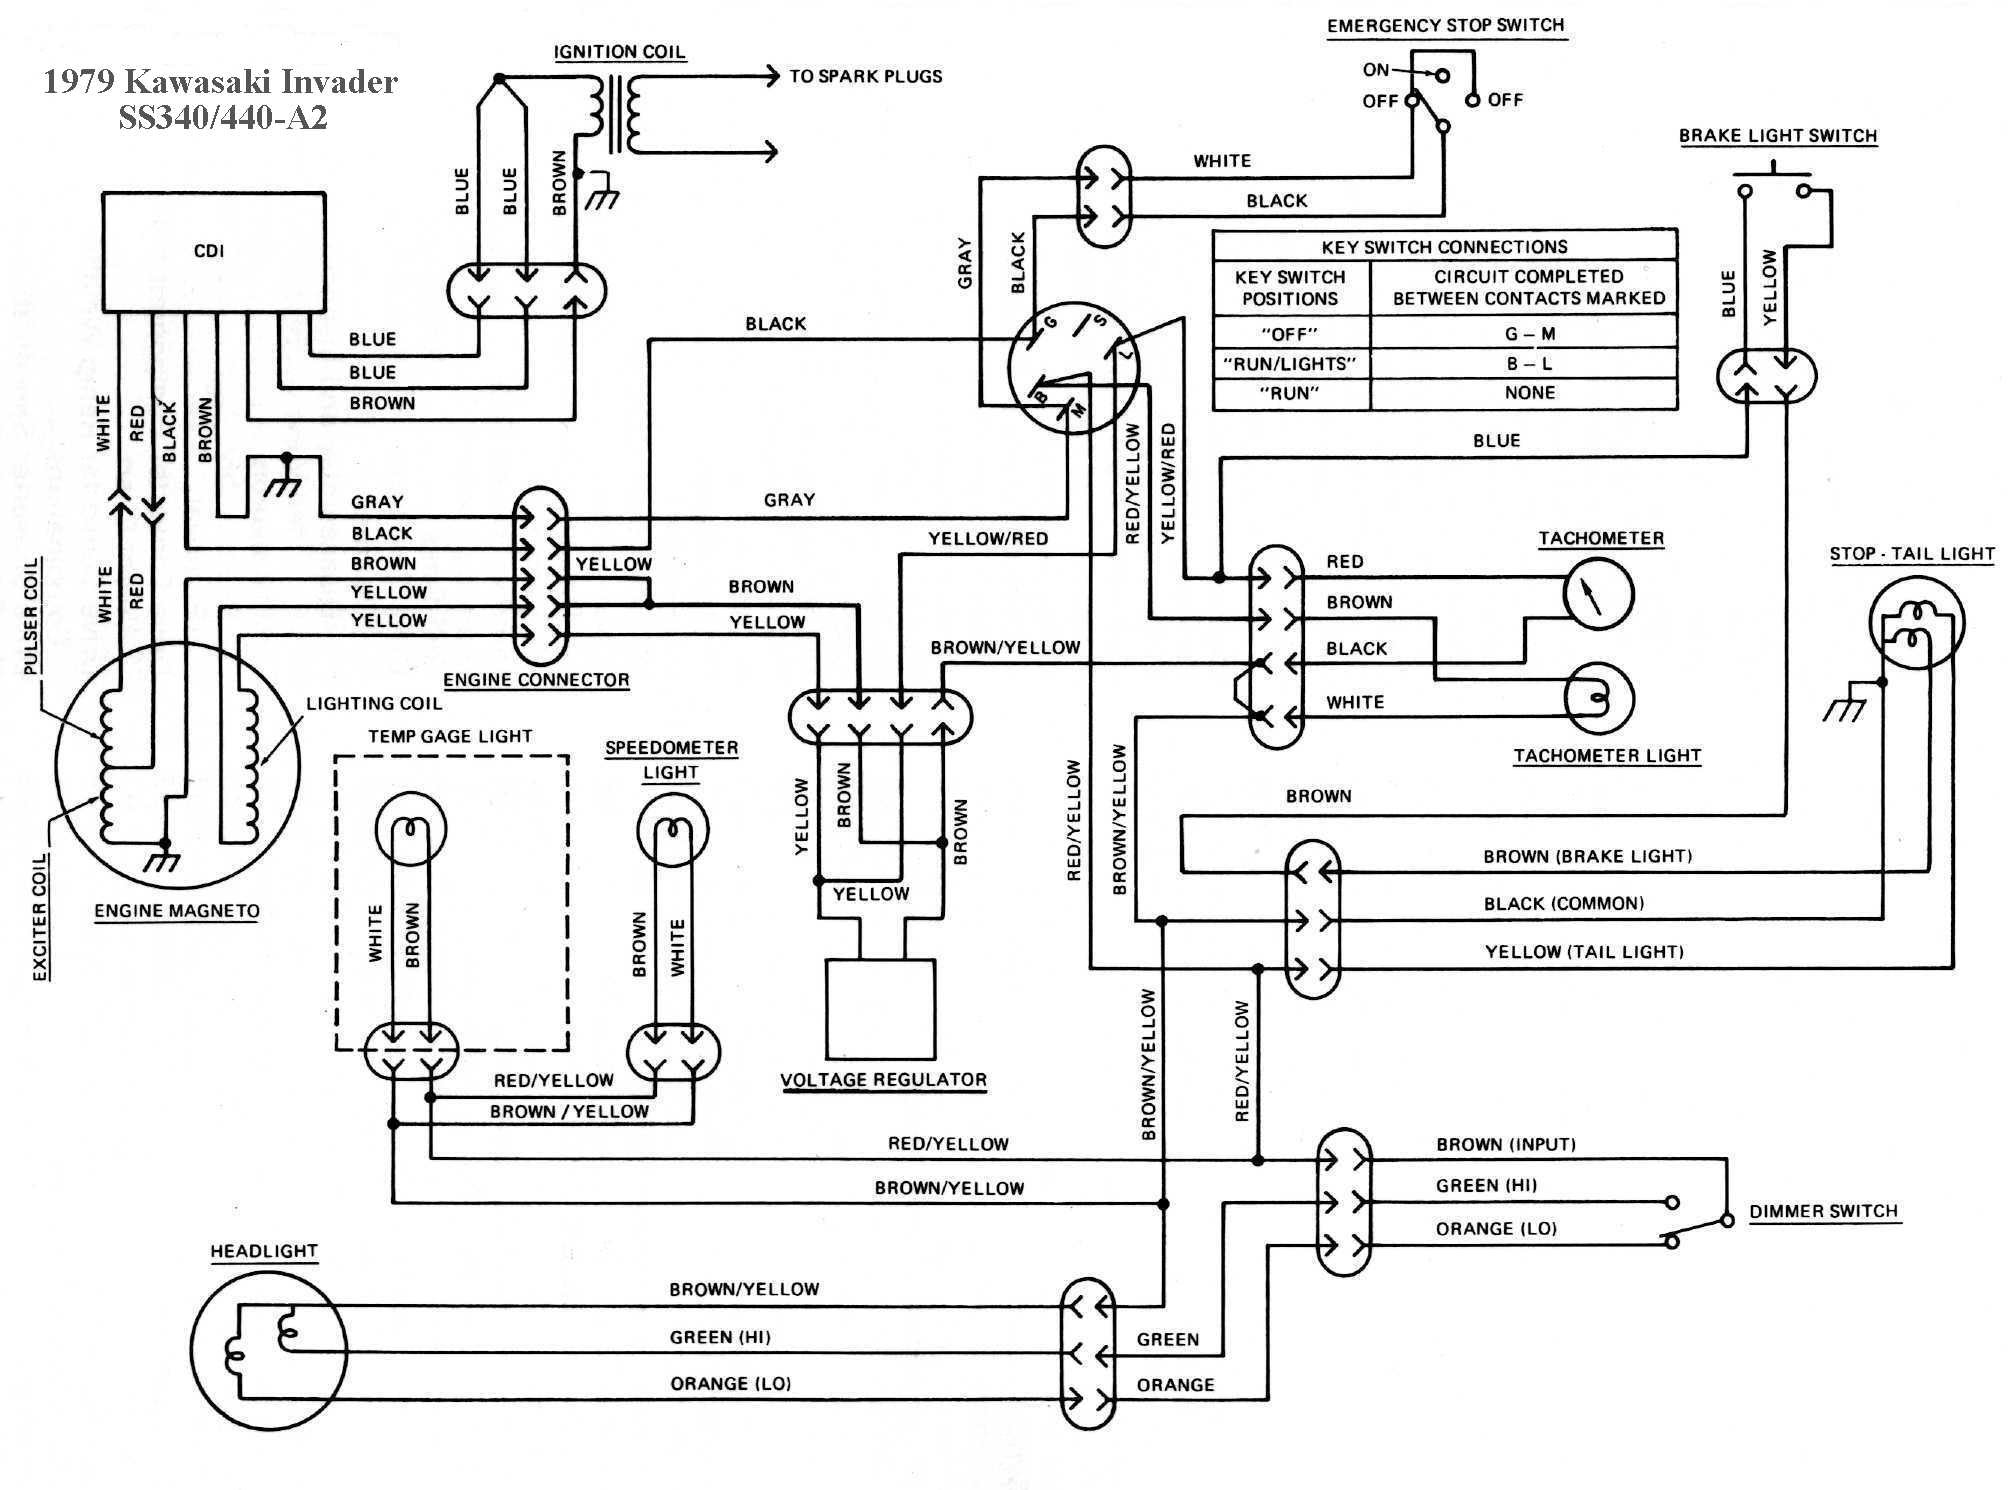 Wiring Diagram For Kawasaki Bayou 220 - Wiring Diagram Text grow-impact -  grow-impact.albergoristorantecanzo.it | Bayou Wiring Schematic |  | grow-impact.albergoristorantecanzo.it